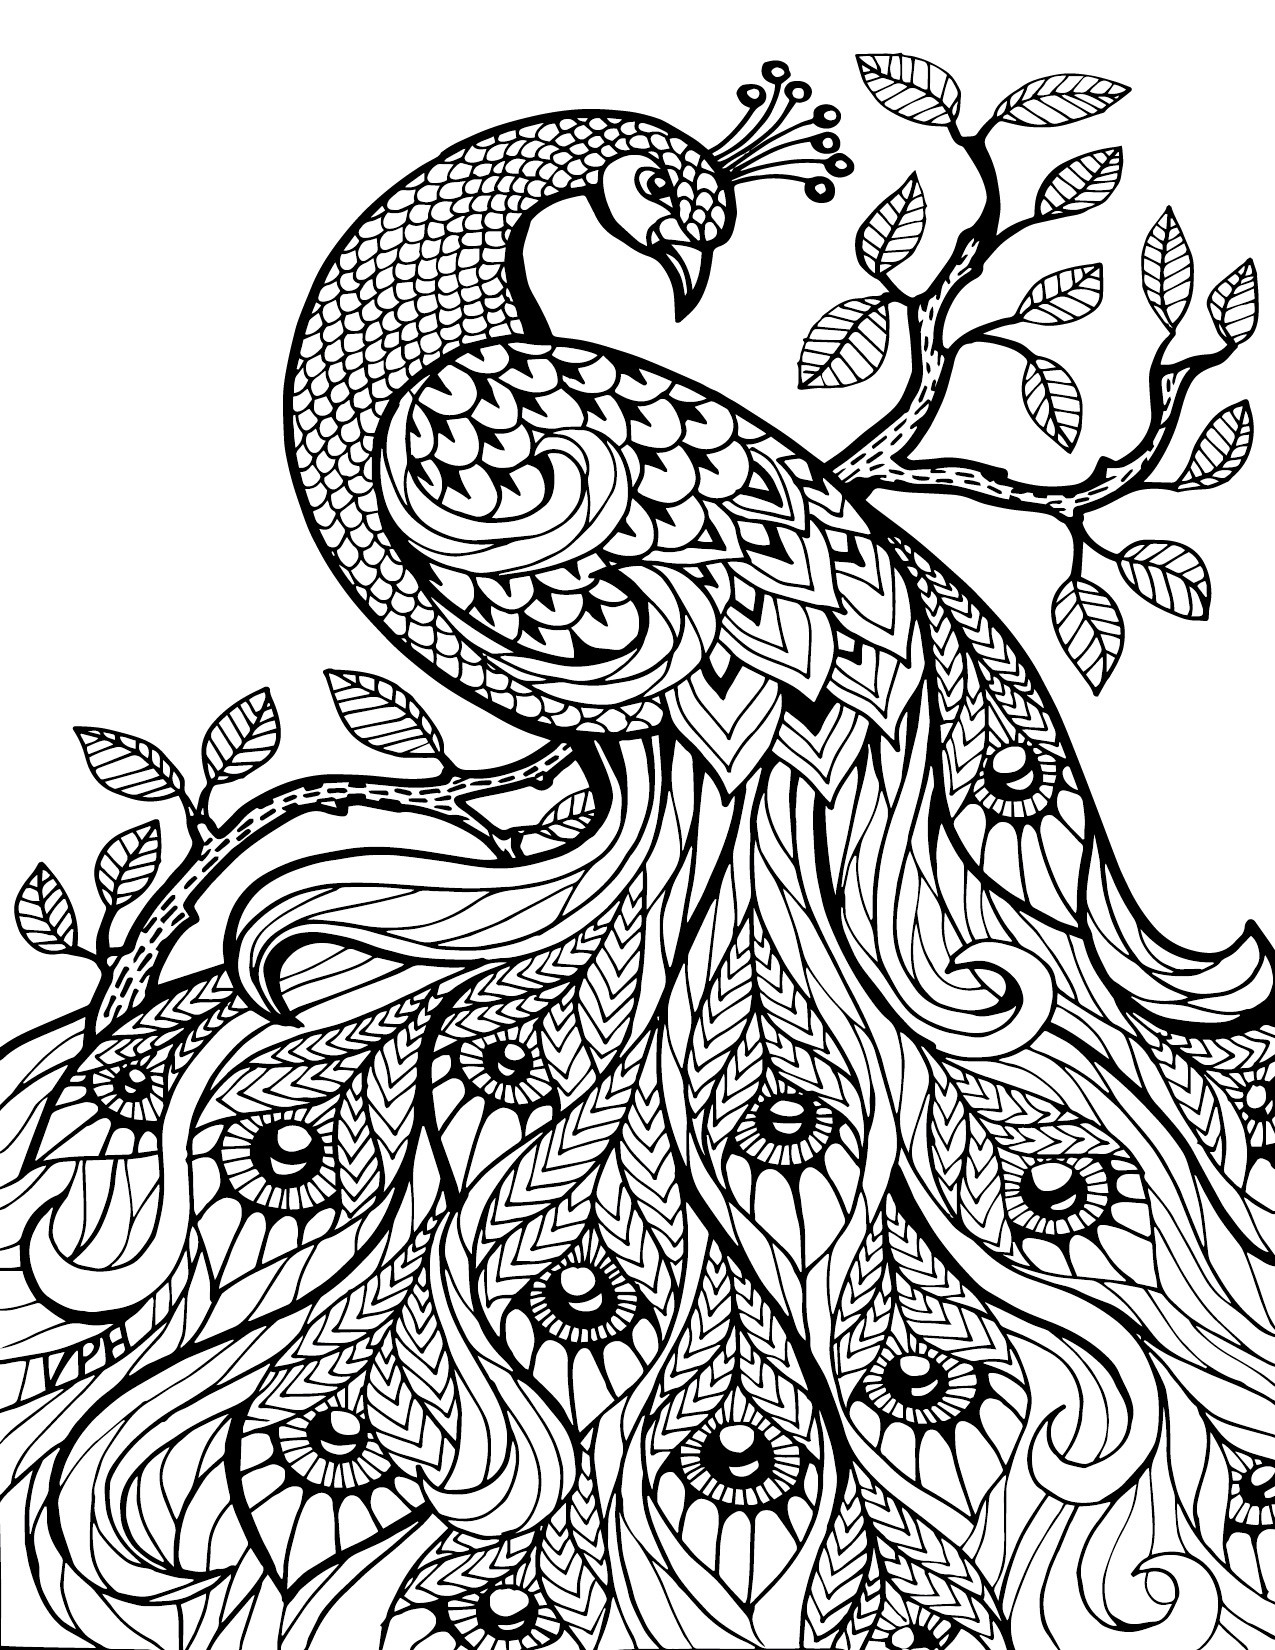 Best ideas about Free Printable Coloring Pages For Adults Only Pdf . Save or Pin Free Download Adult Coloring Pages Now.